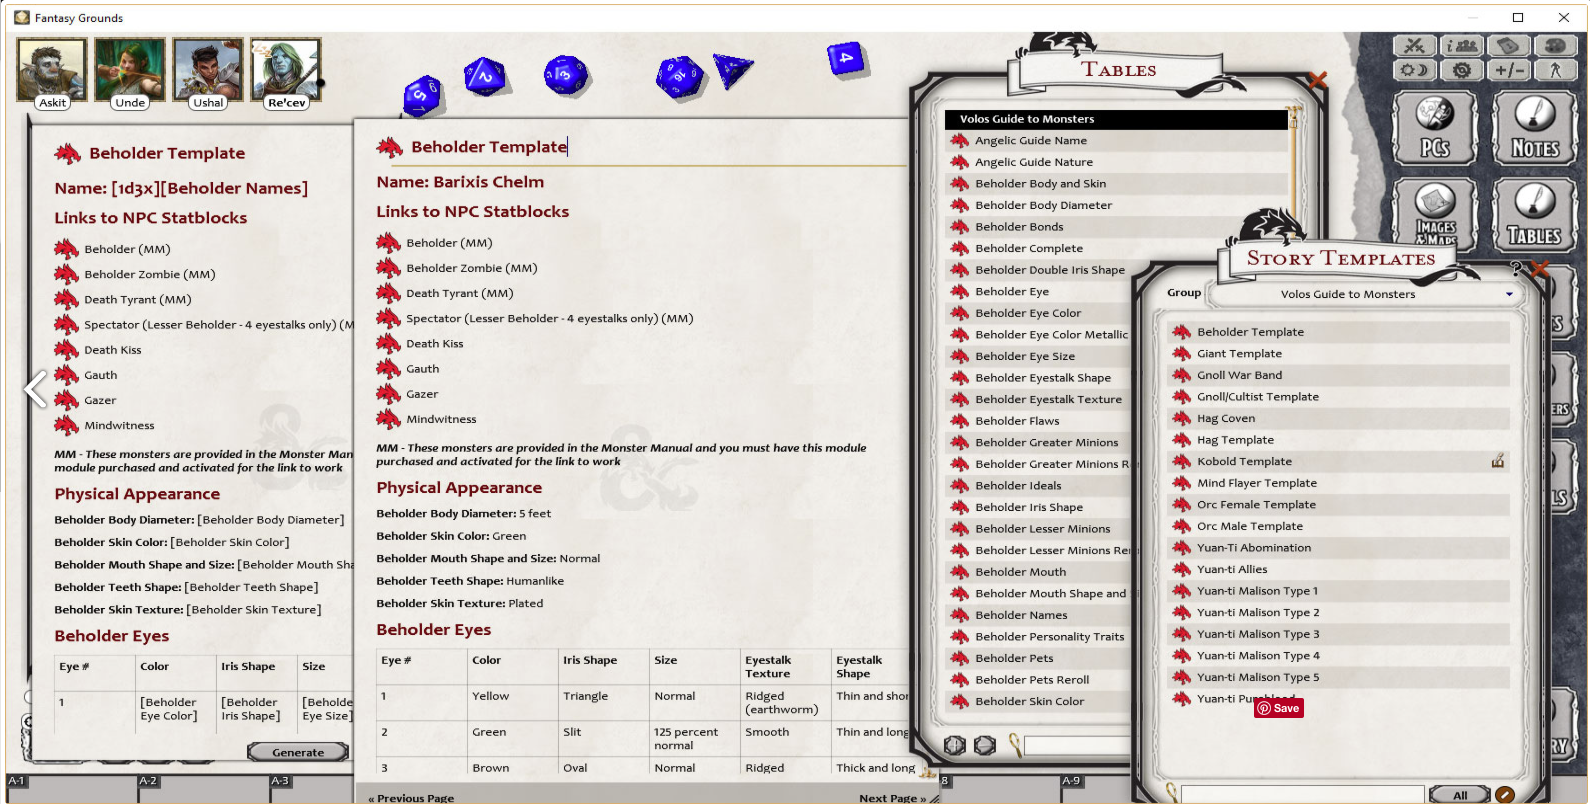 The 10 Player Races in Volo's Guide Revealed